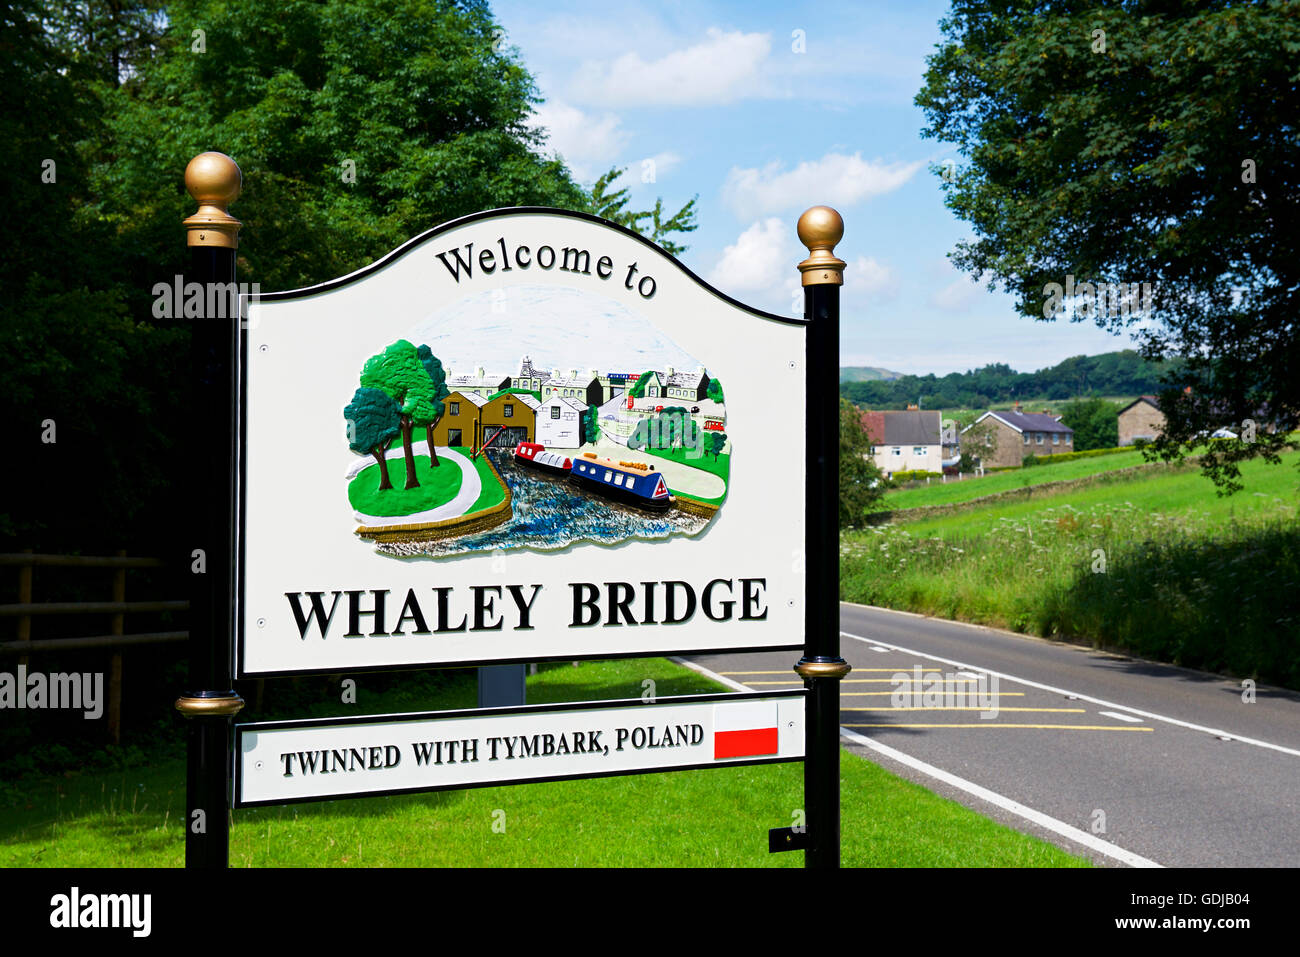 Sign welcoming drivers to the town of Whaley Bridge, Derbyshire, England UK - Stock Image